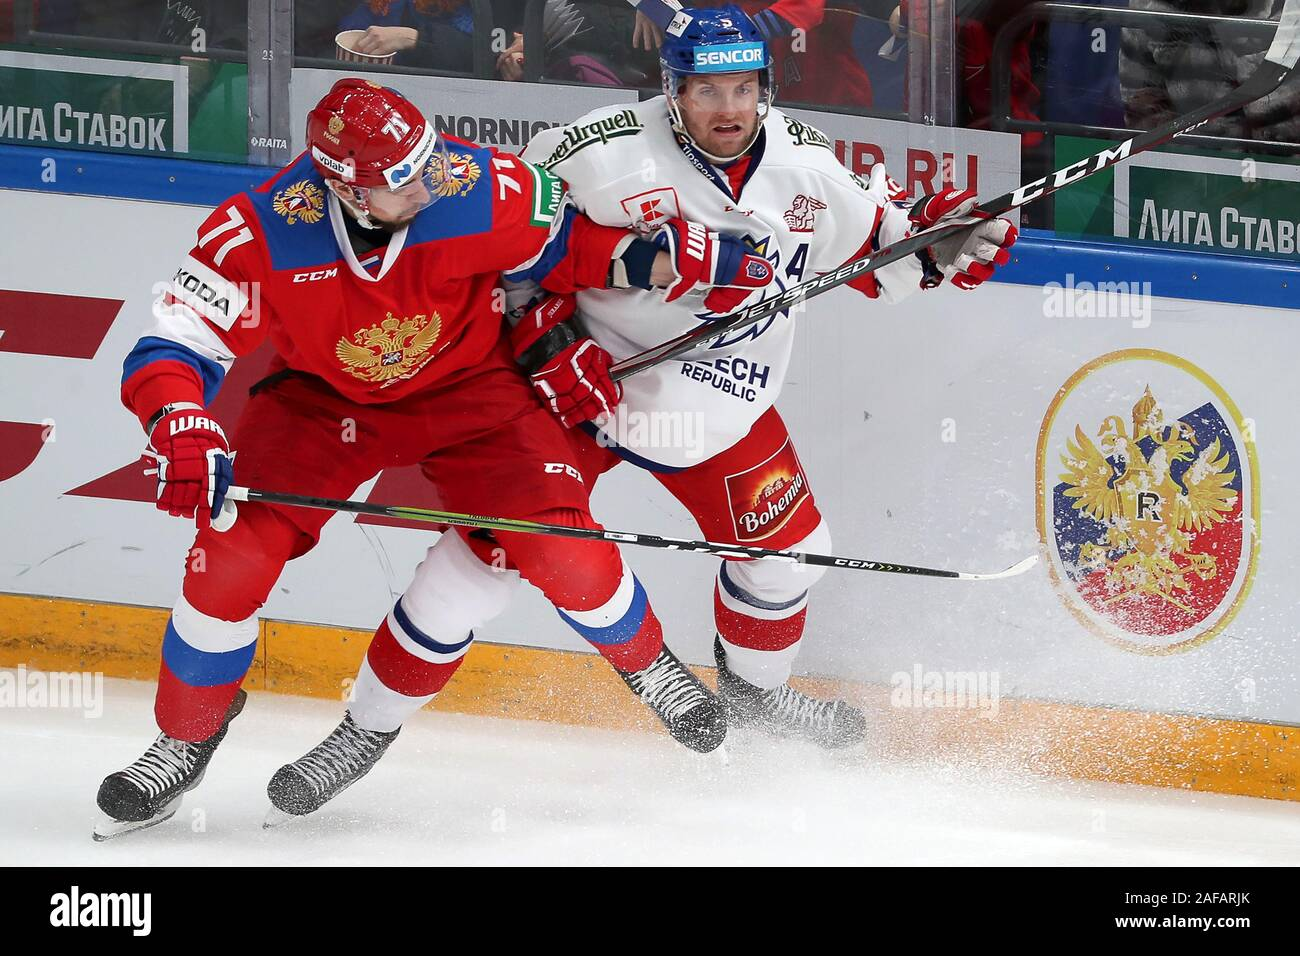 Moscow, Russia. 14th Dec, 2019. MOSCOW, RUSSIA - DECEMBER 14, 2019: Russia's Anton Burdasov (L) and the Czech Republic's Jakub Jerabek in their 2019/20 Euro Hockey Tour Channel One Cup ice hockey match at CSKA Arena. Mikhail Tereshchenko/TASS Credit: ITAR-TASS News Agency/Alamy Live News Stock Photo